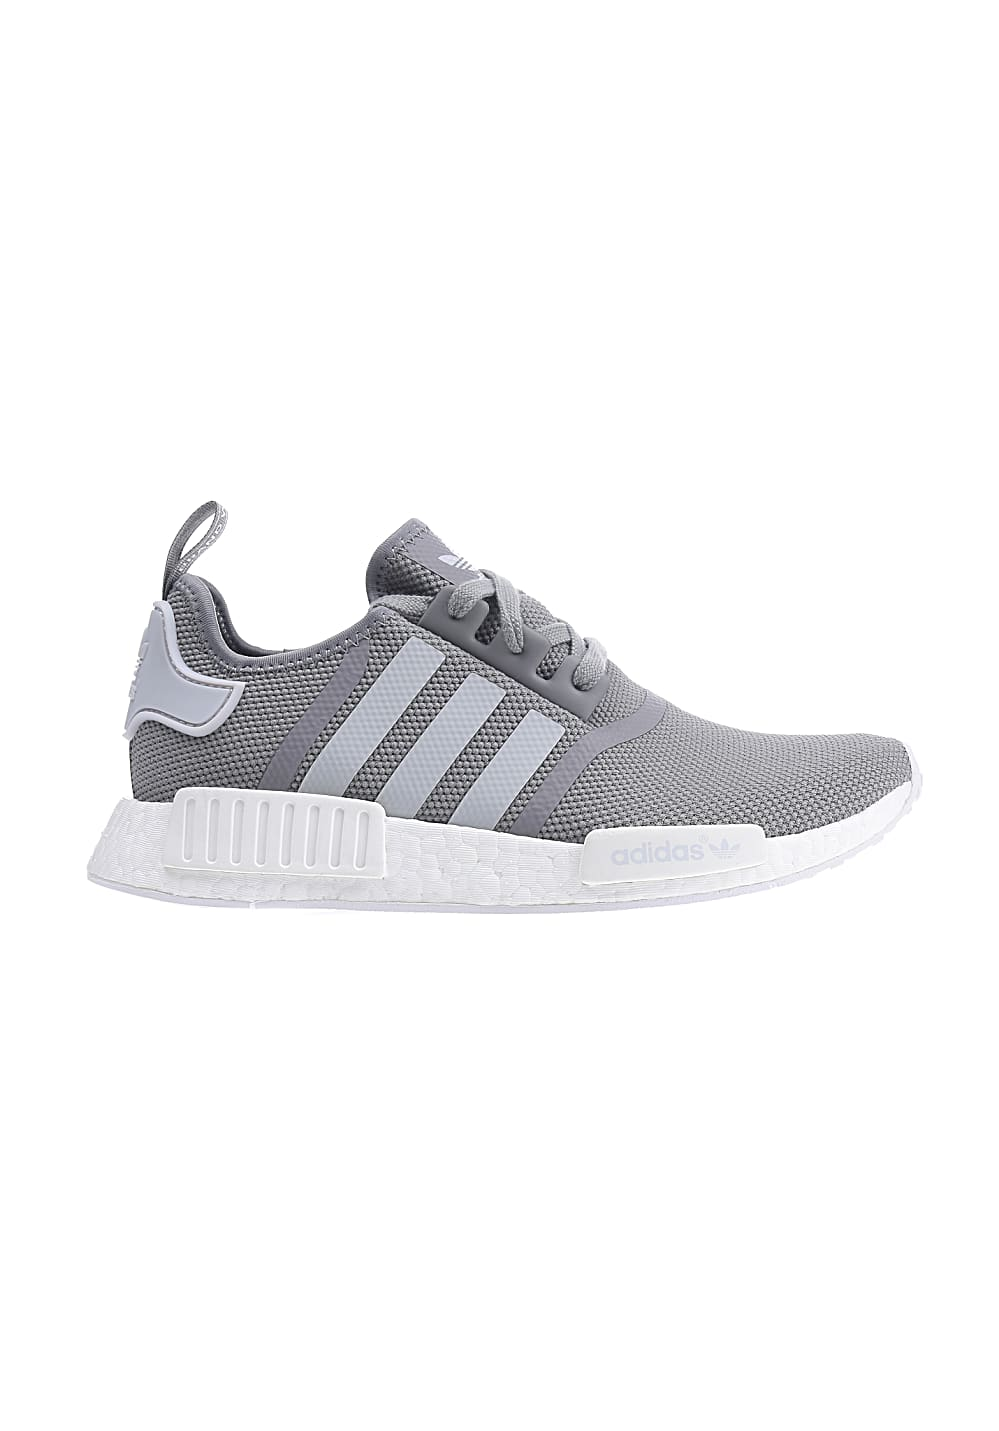 adidas nmd r1 sneaker f r herren grau planet sports. Black Bedroom Furniture Sets. Home Design Ideas